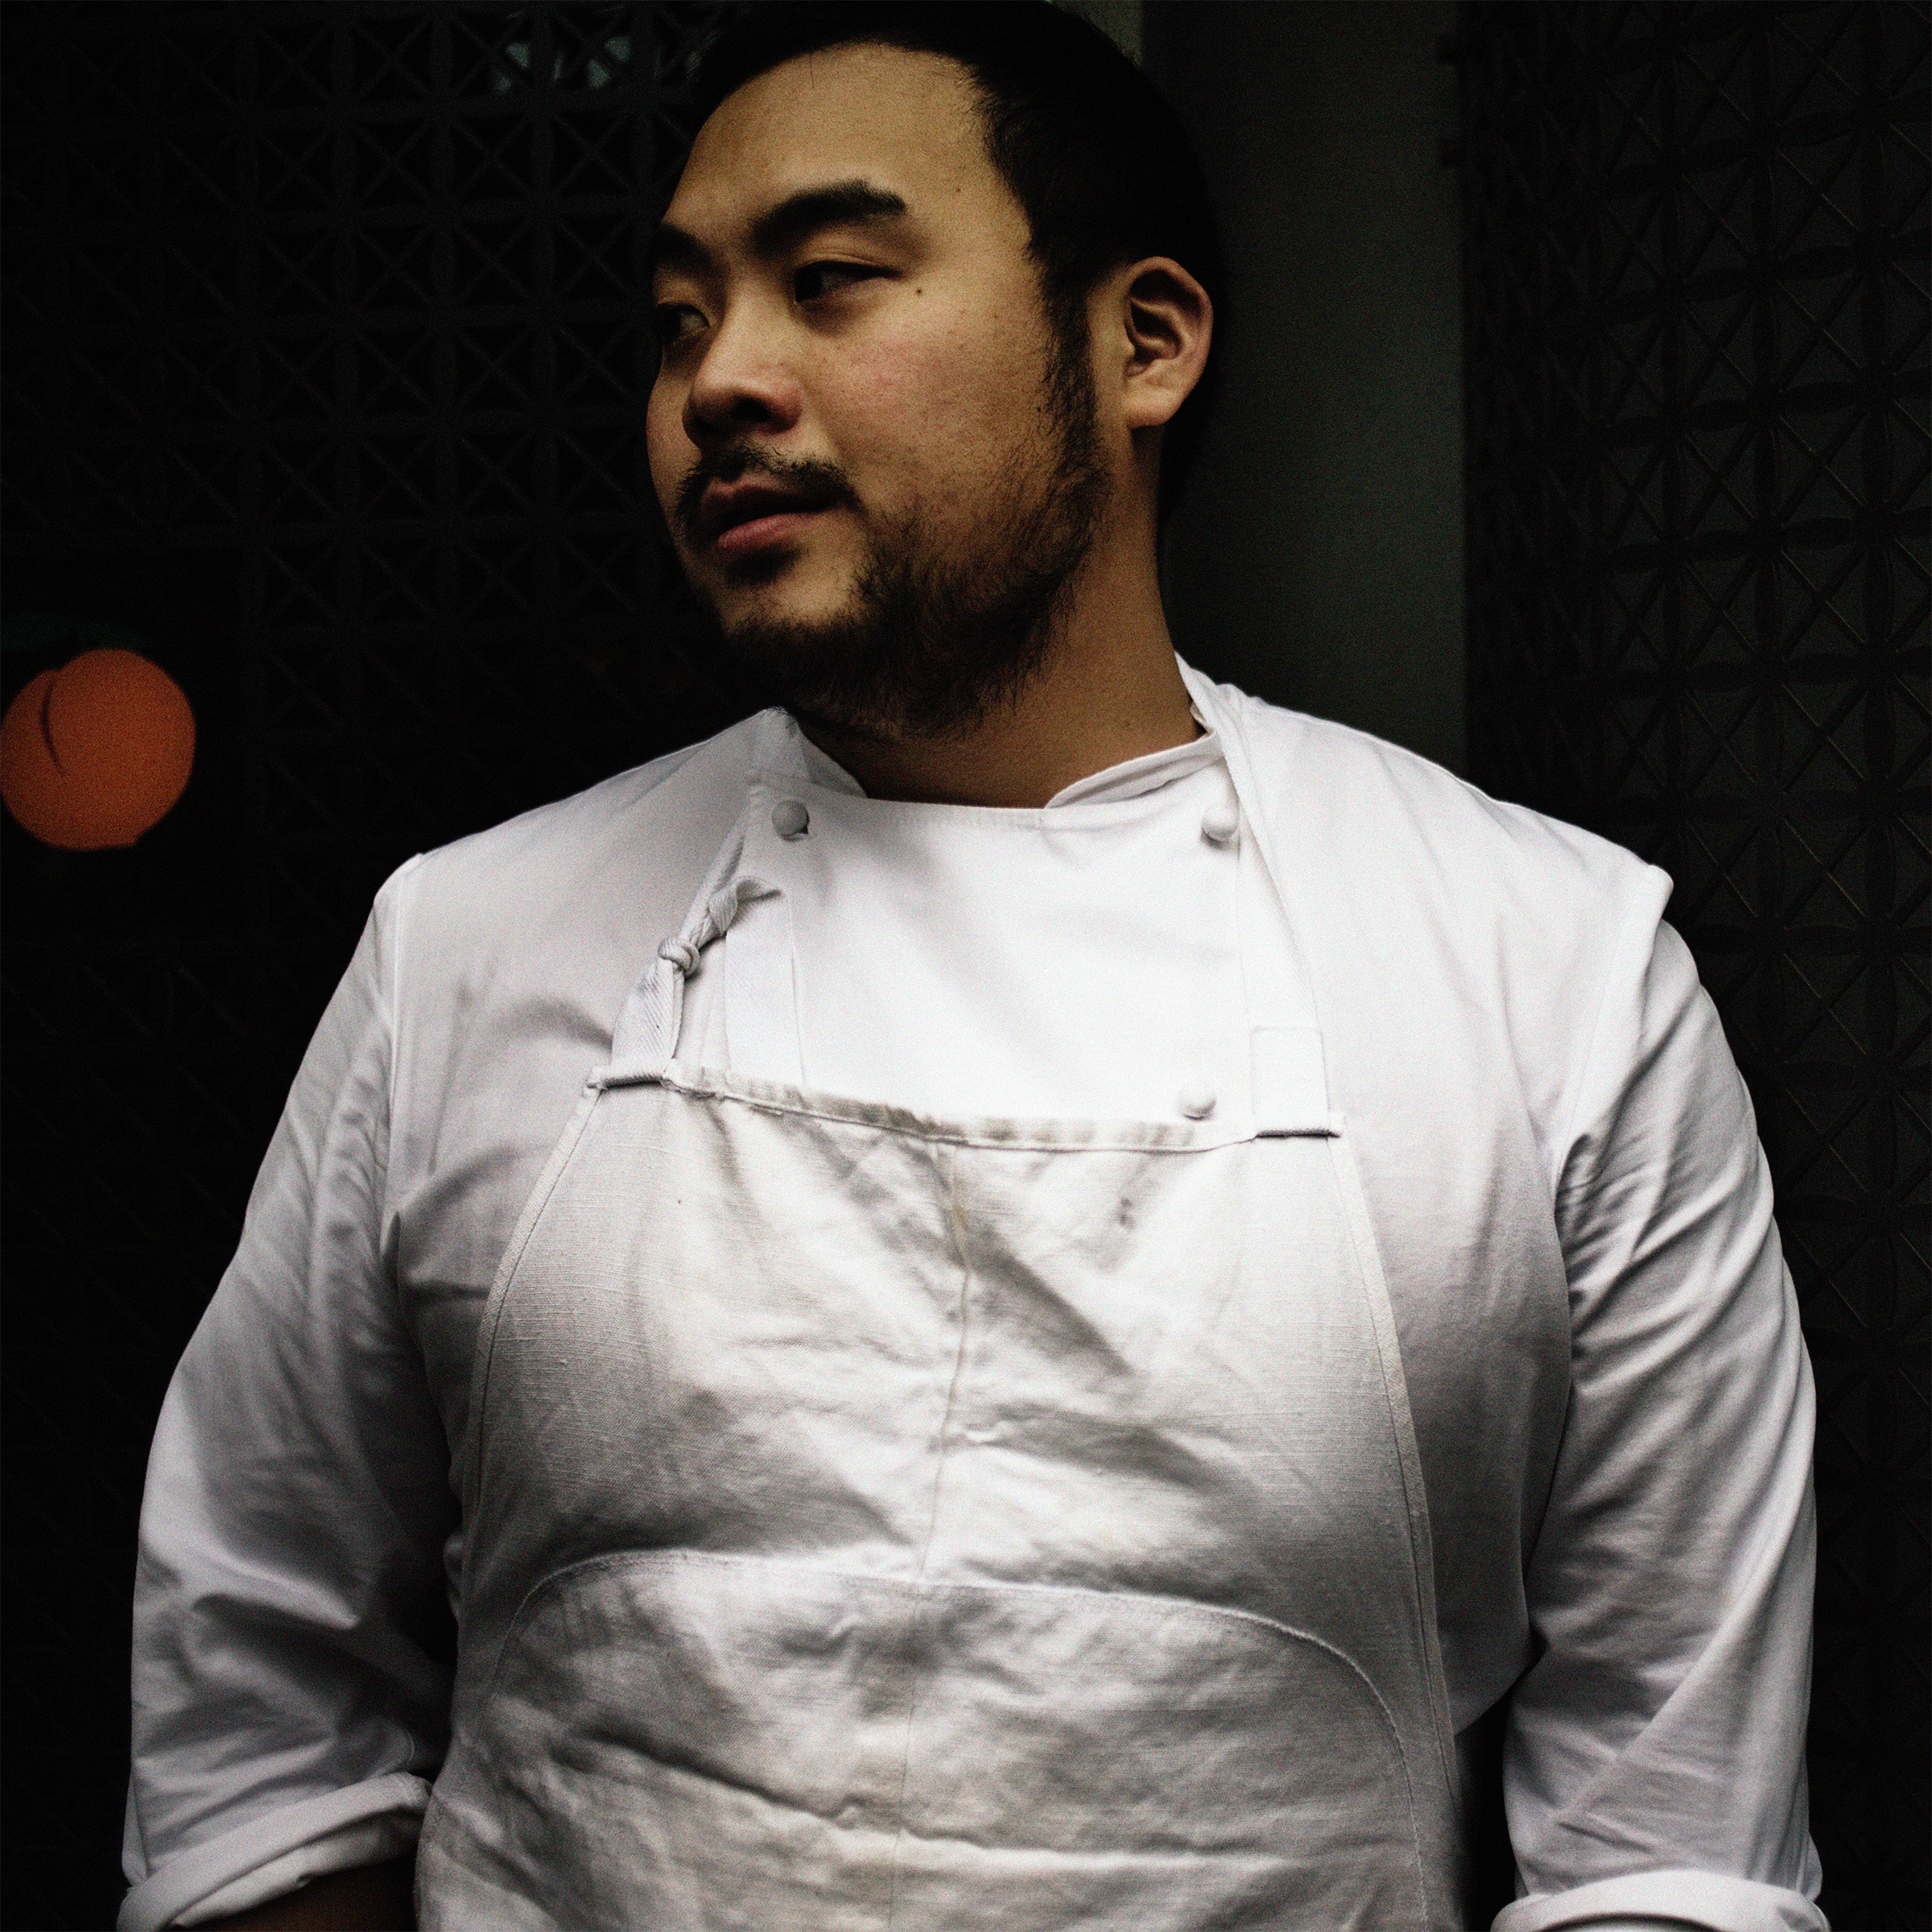 30. Restaurateur and chef David Chang